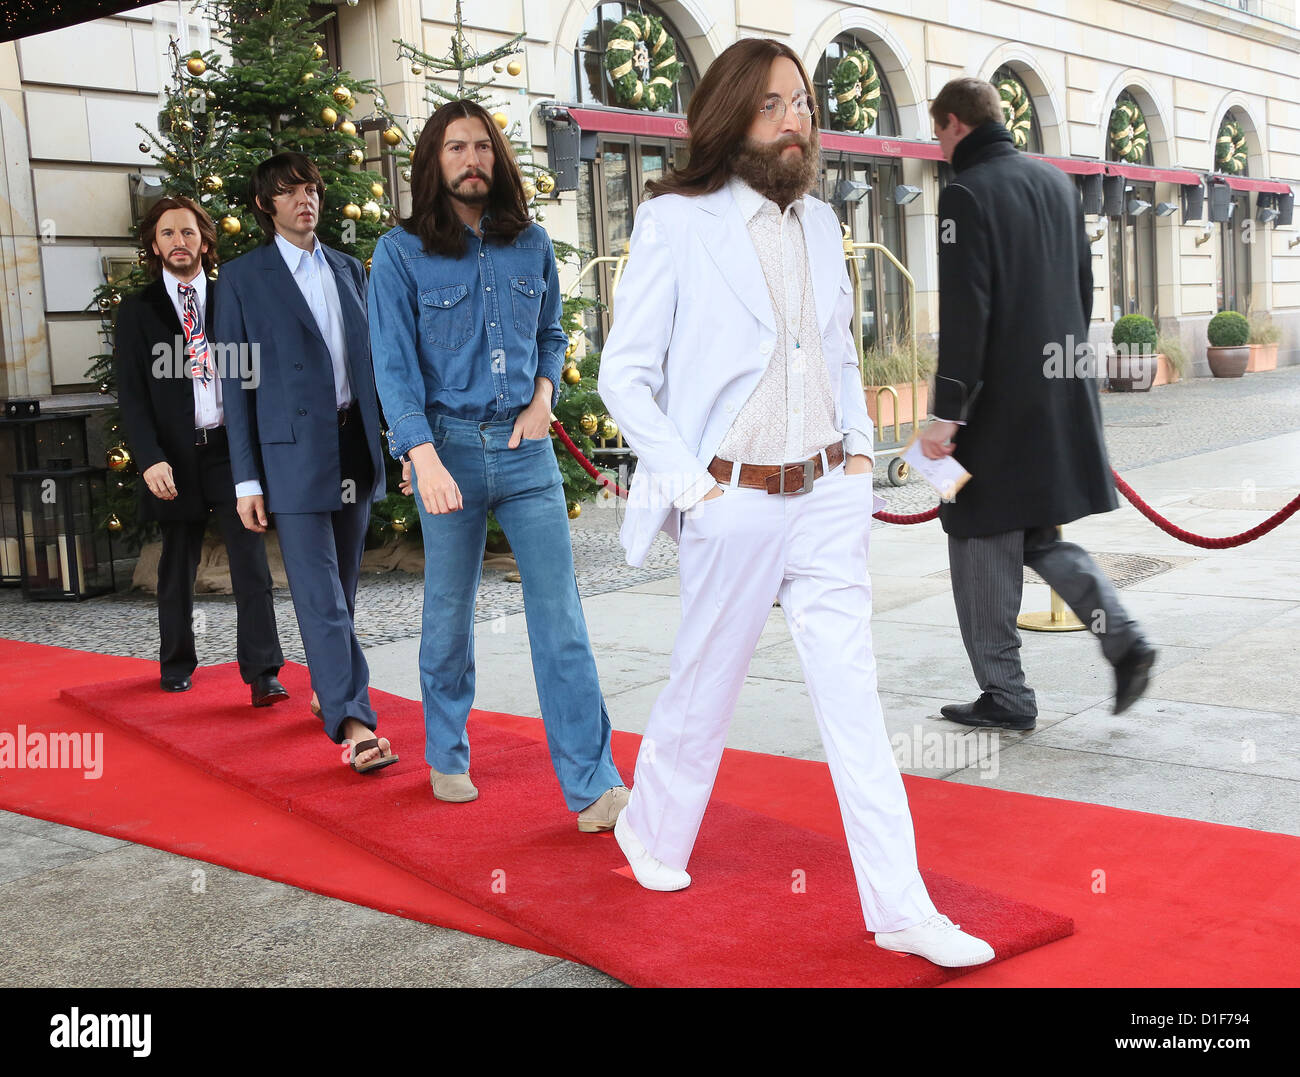 Wax figures of John Lennon (r-l), George Harrison, Paul McCartney and Ringo Starr as Abbey Road Beatles stands at - Stock Image